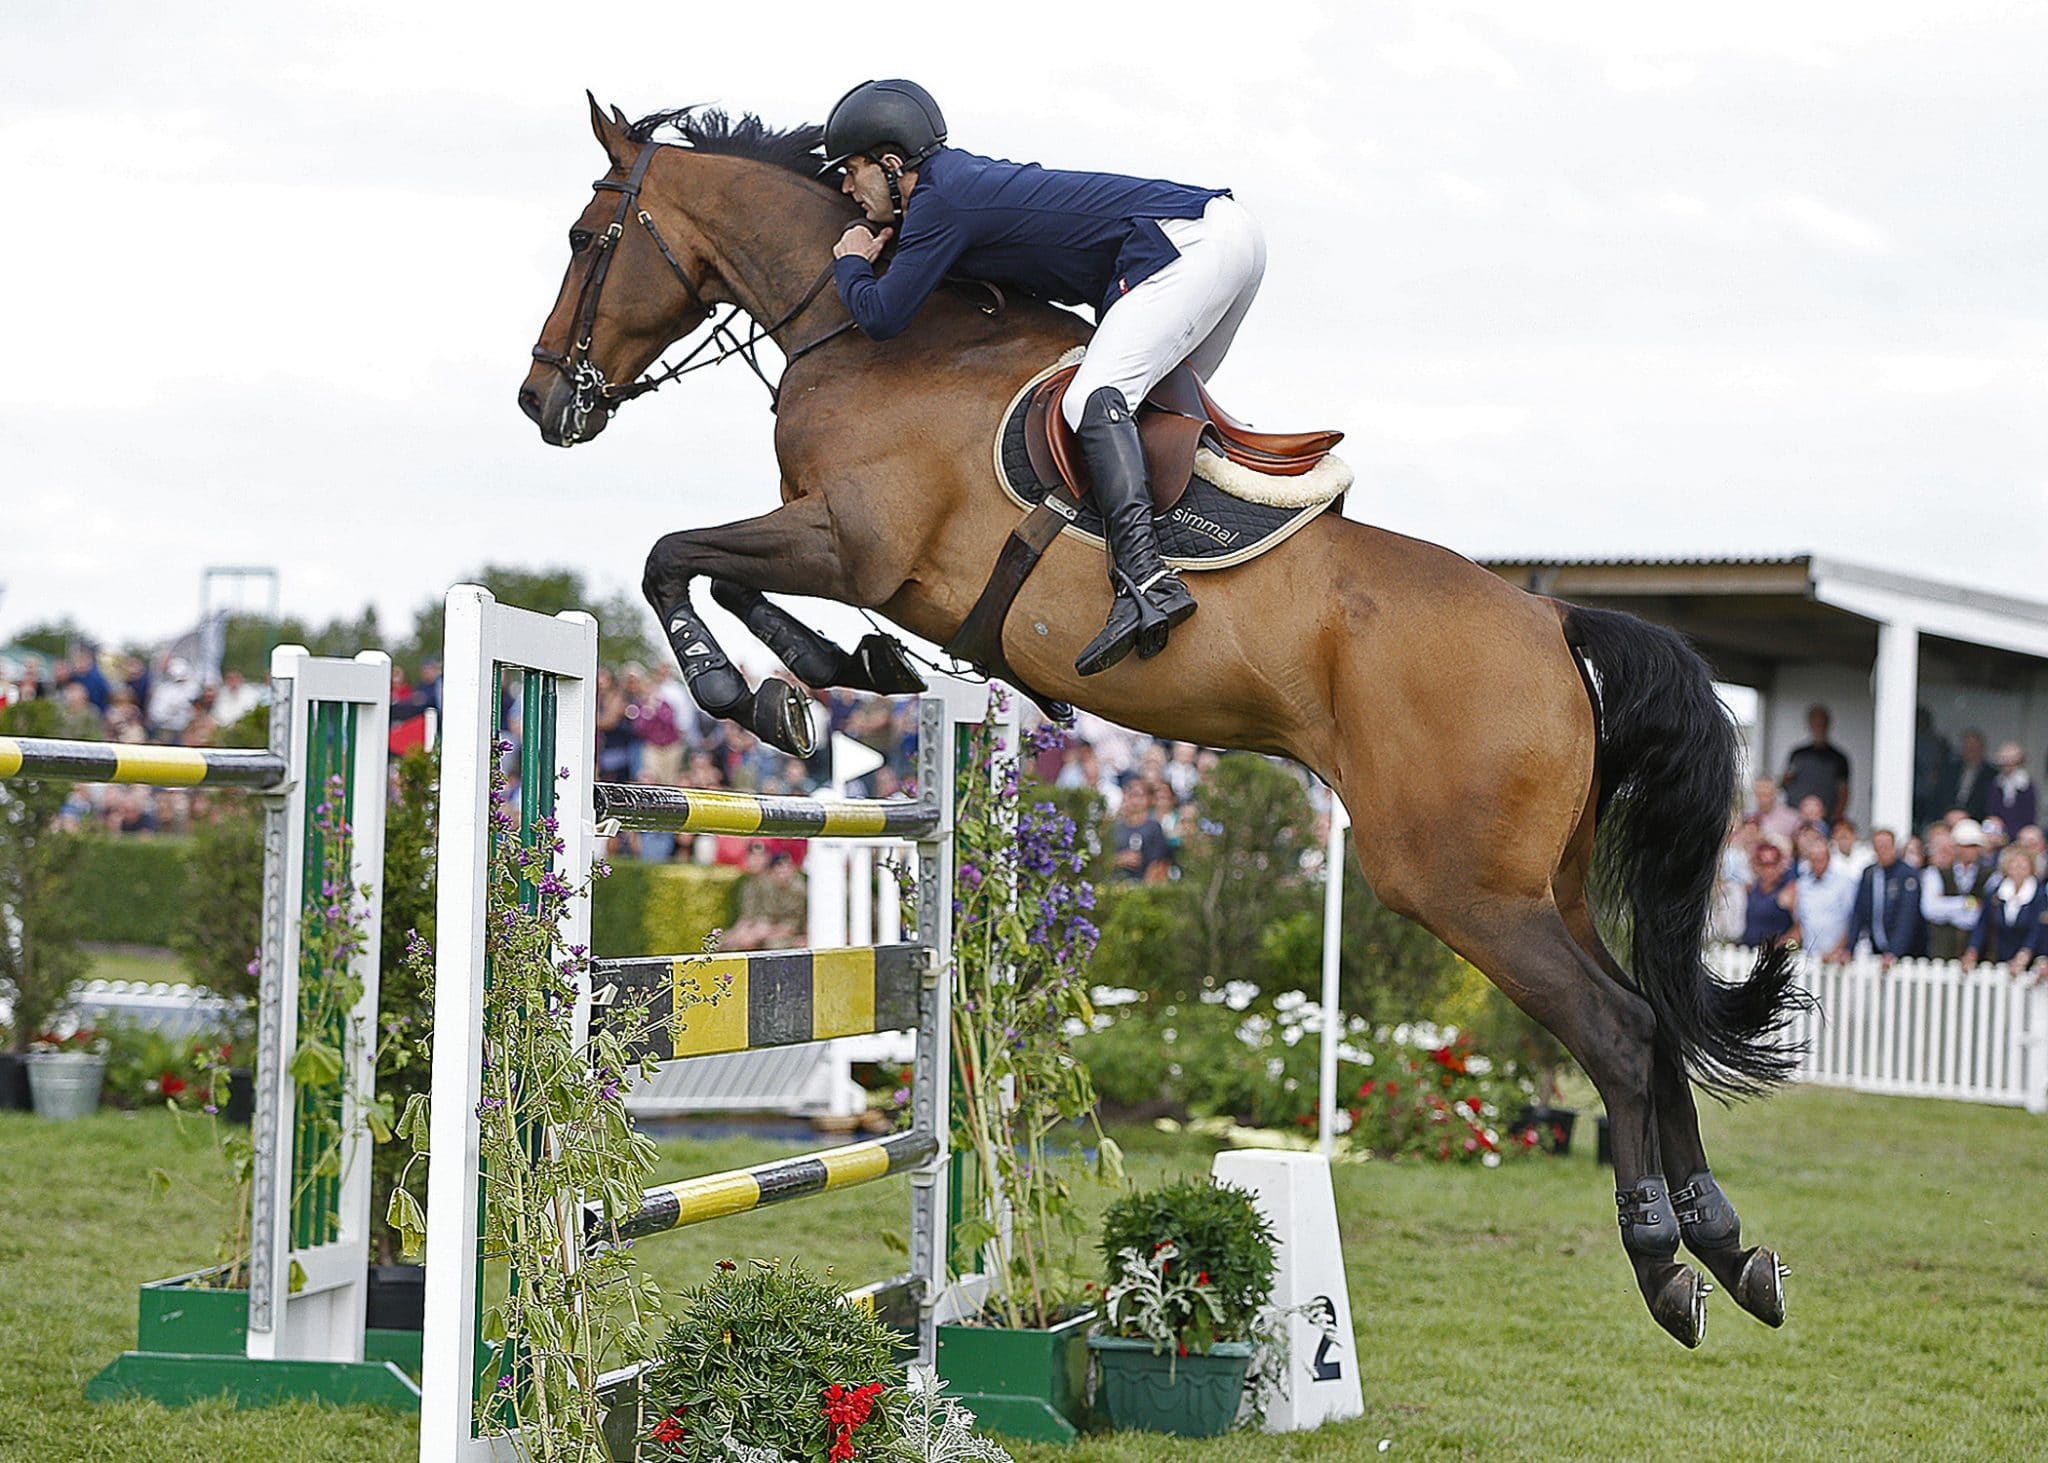 Showjumping at Great Yorkshire Show